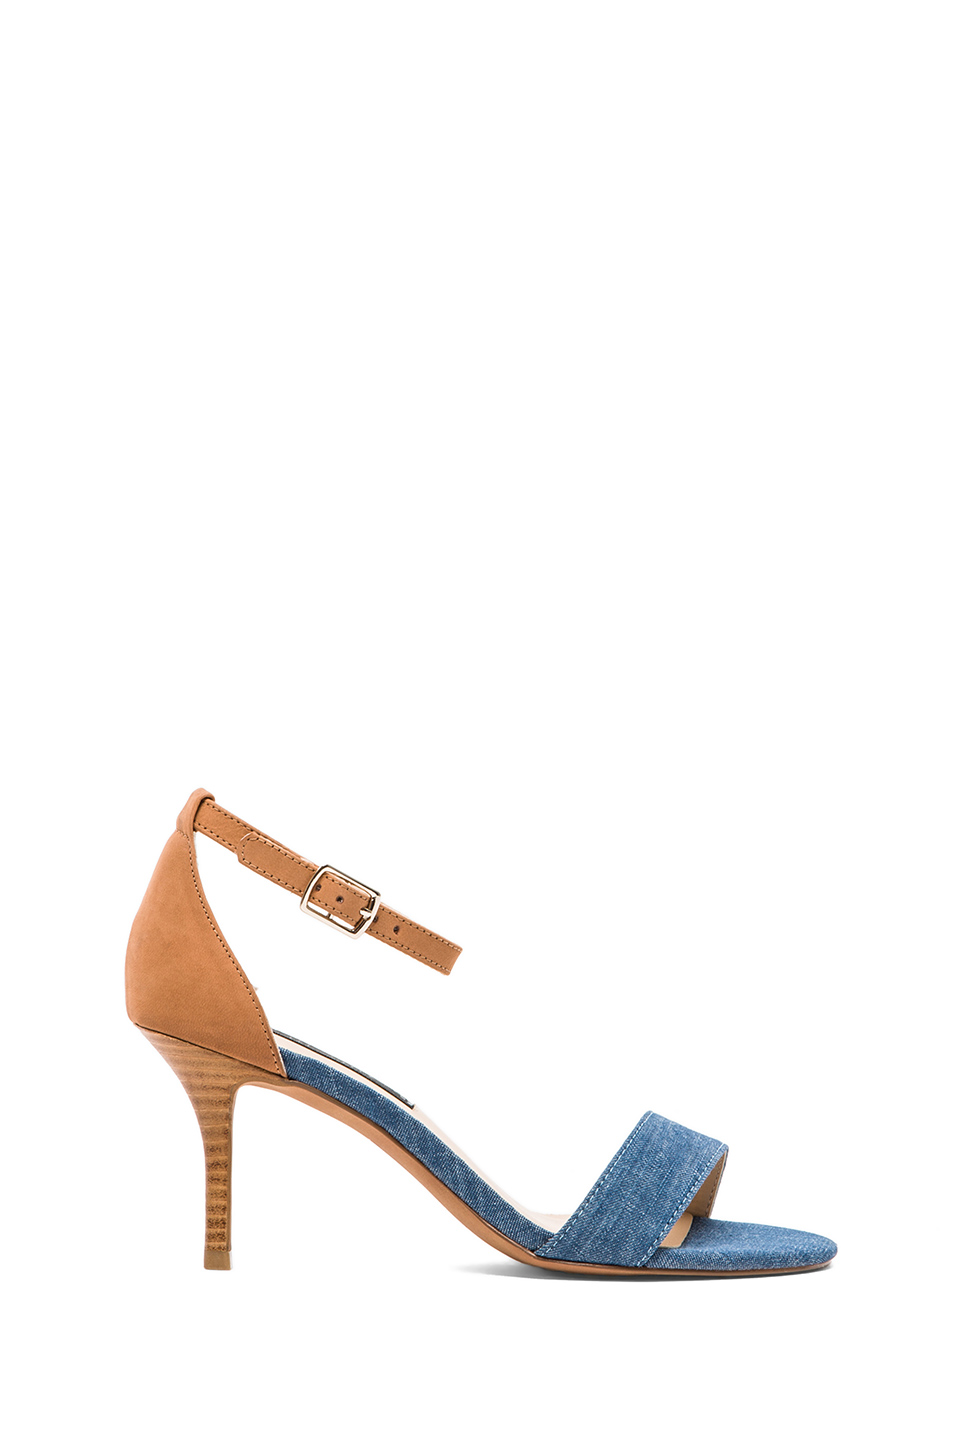 Steven Vienna Heel in Denim